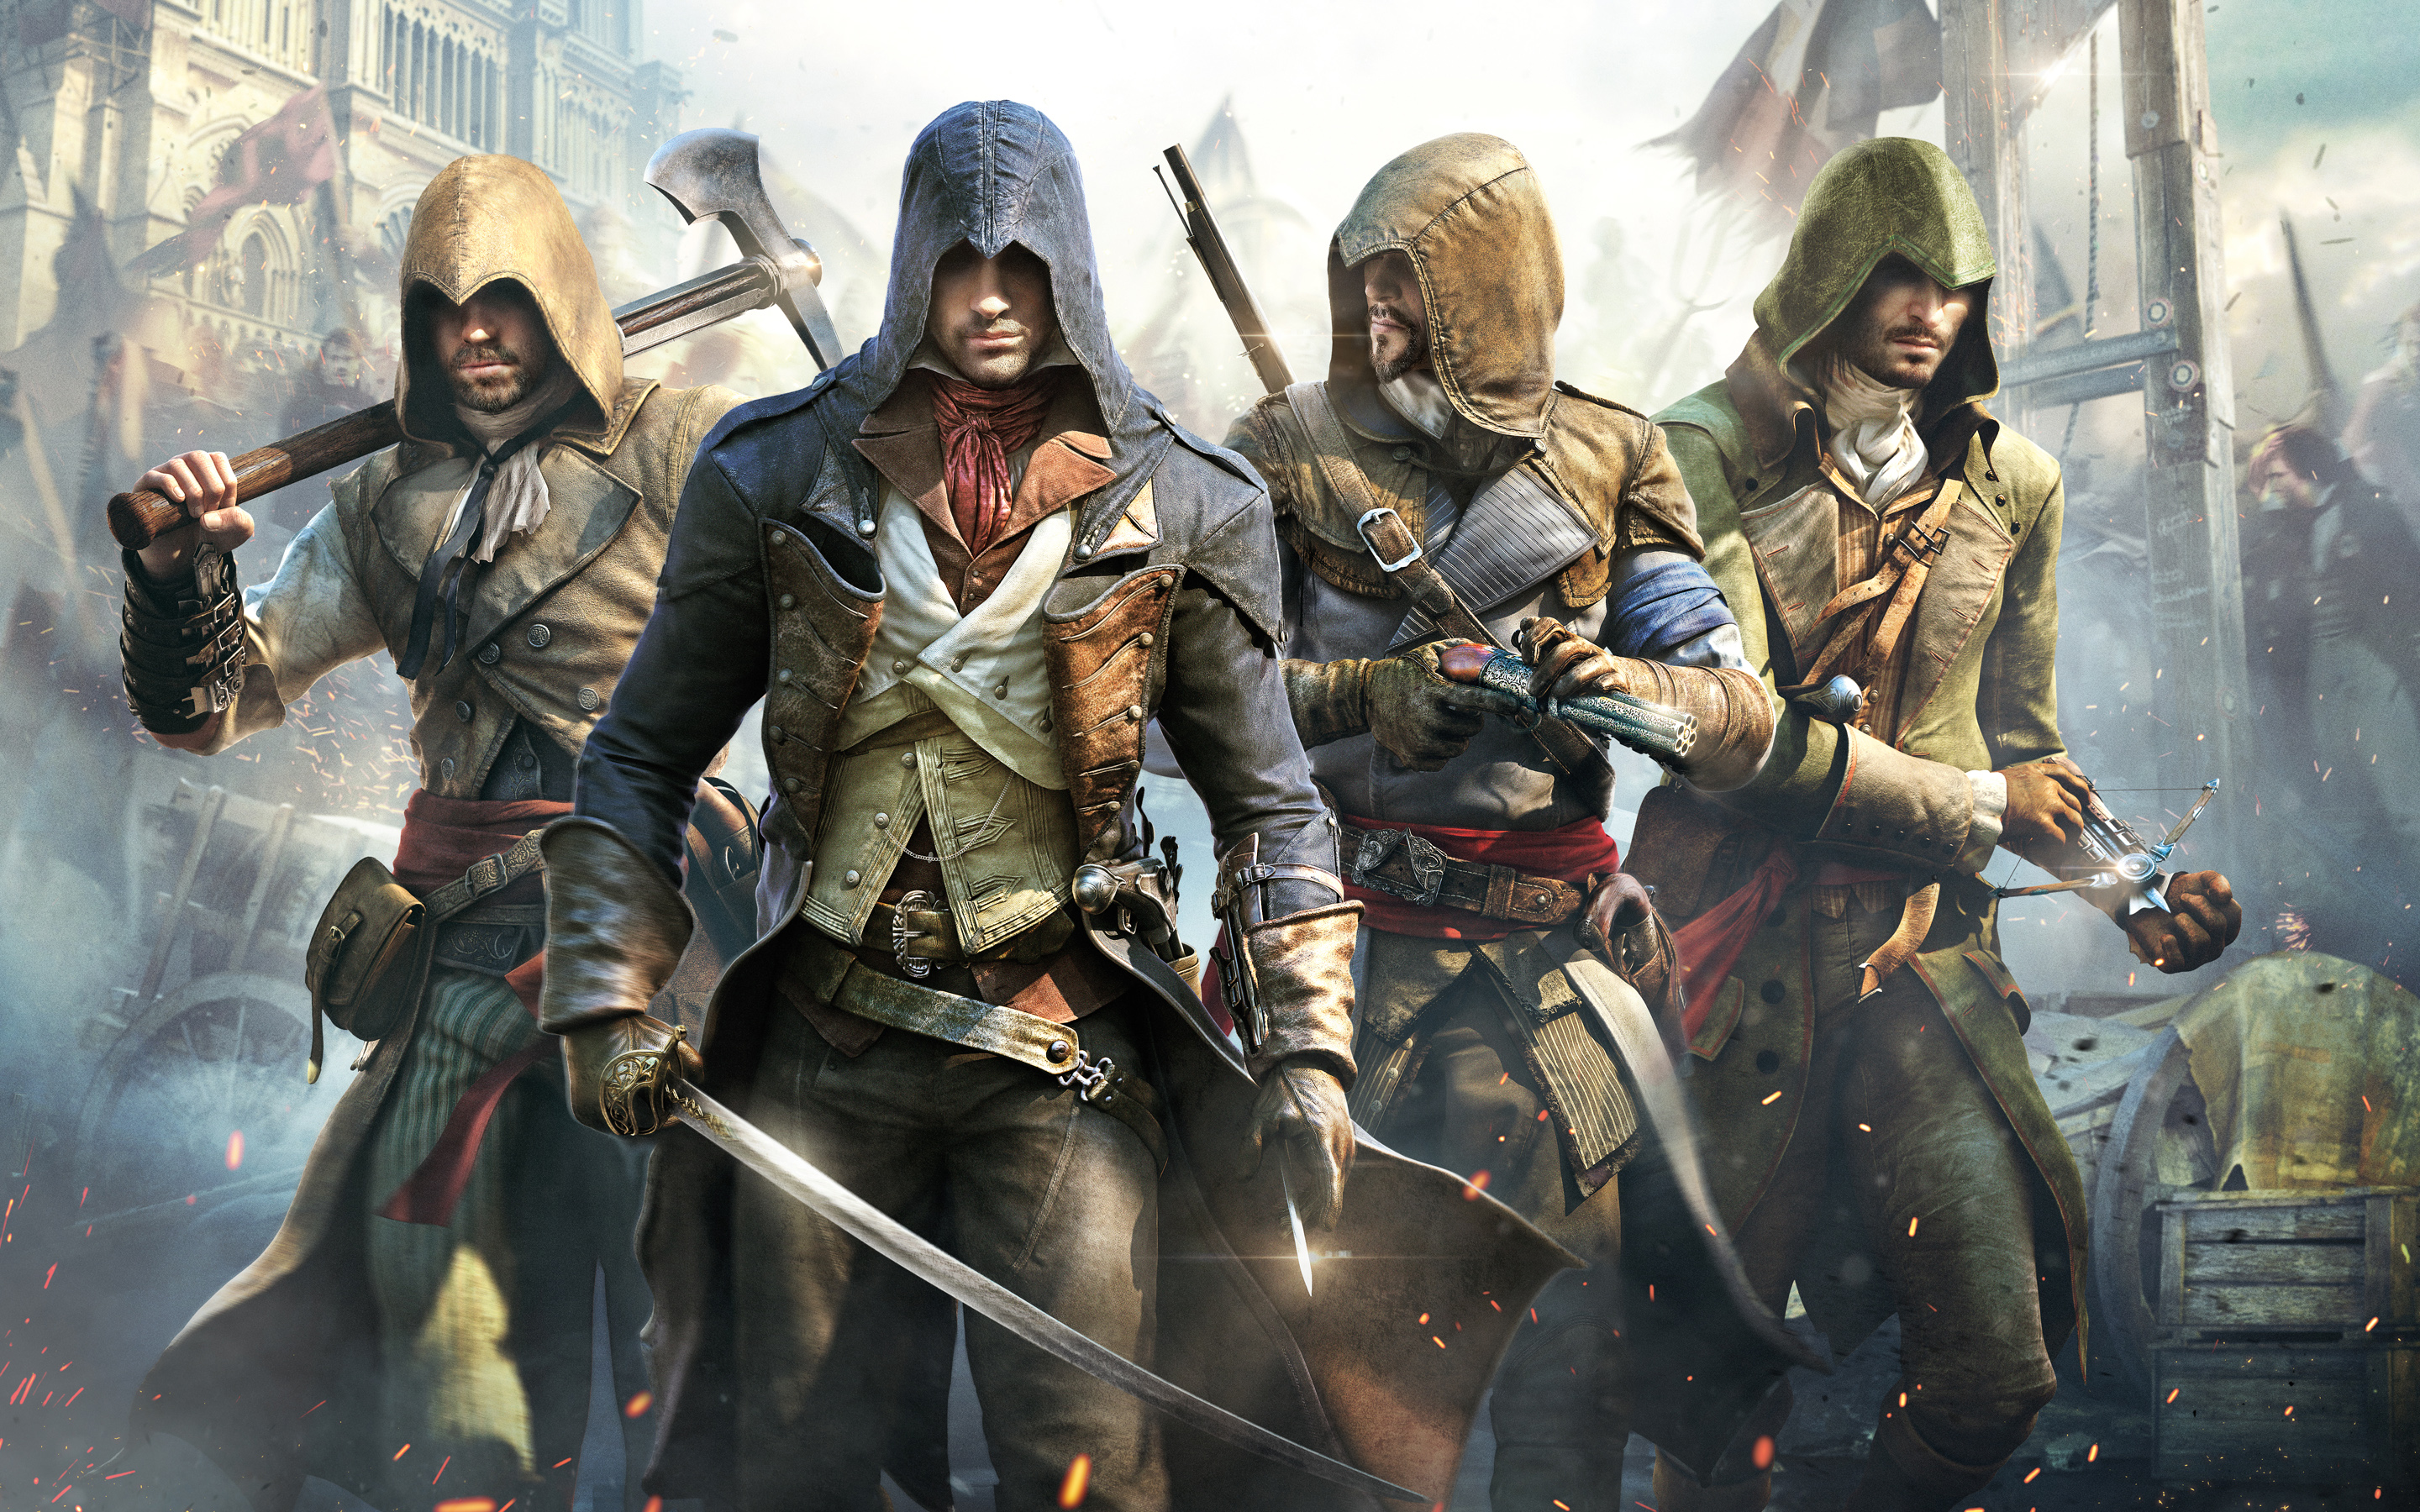 Awesome Assassins Creed Unity Wallpaper